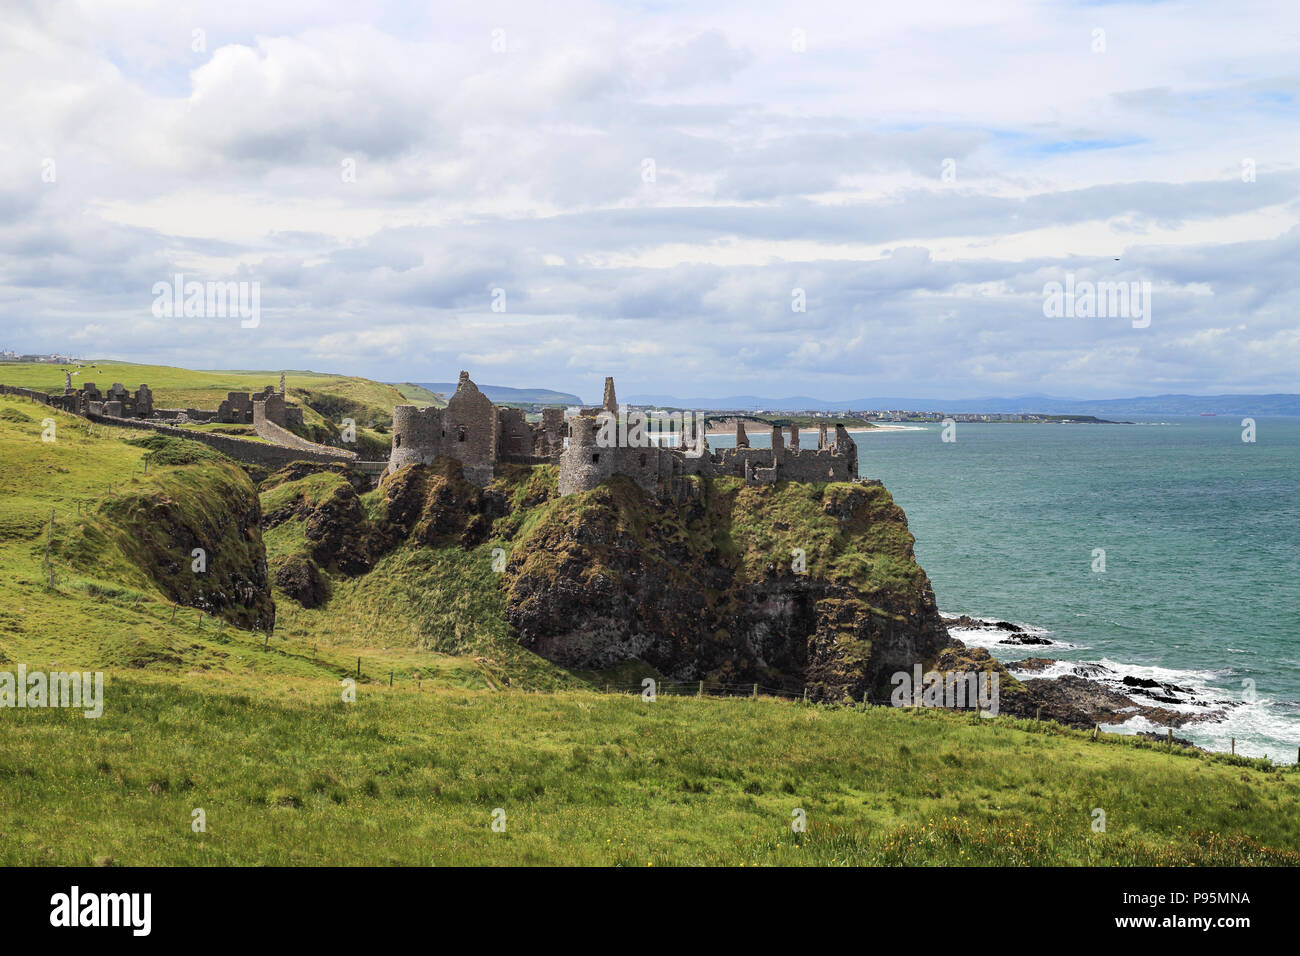 Dunluce Castle is a now-ruined medieval castle in Northern Ireland. It is located on the edge of a basalt outcropping in County Antrim. Stock Photo